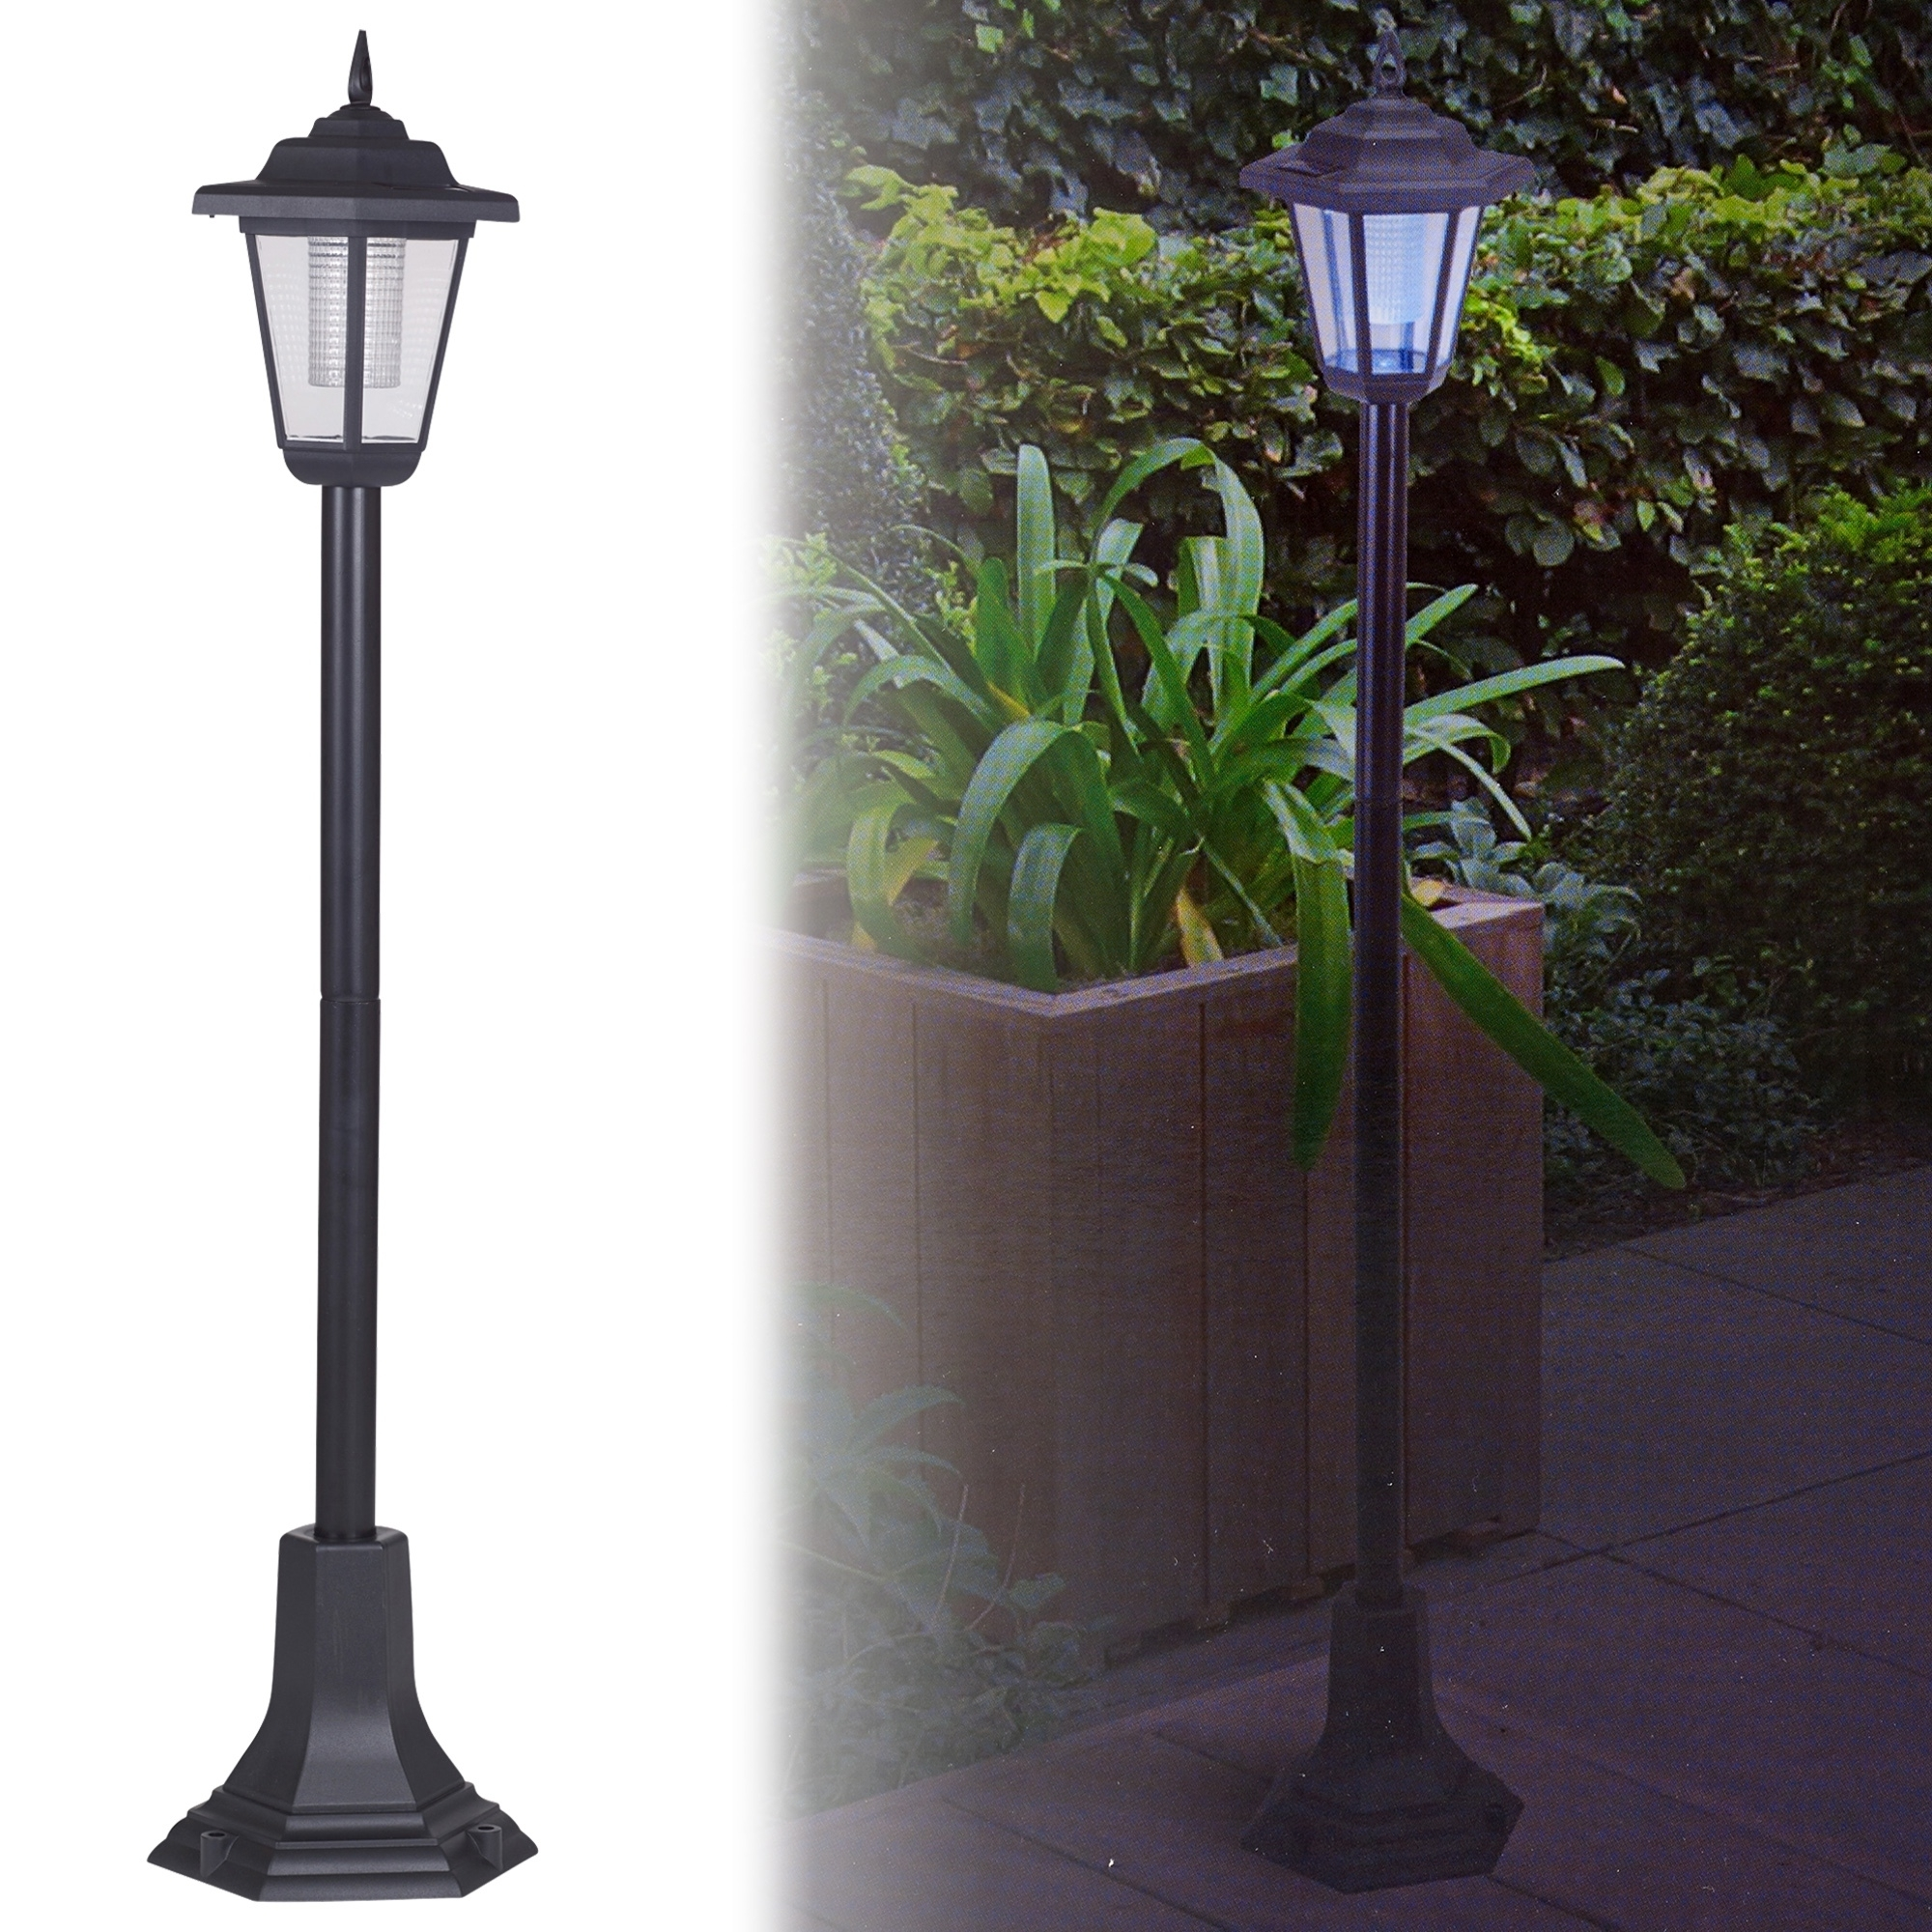 Outdoor Driveway Lanterns With Most Recent Solar Powered Garden Lights Lantern Lamp Black Led Pathway Driveway (View 12 of 20)